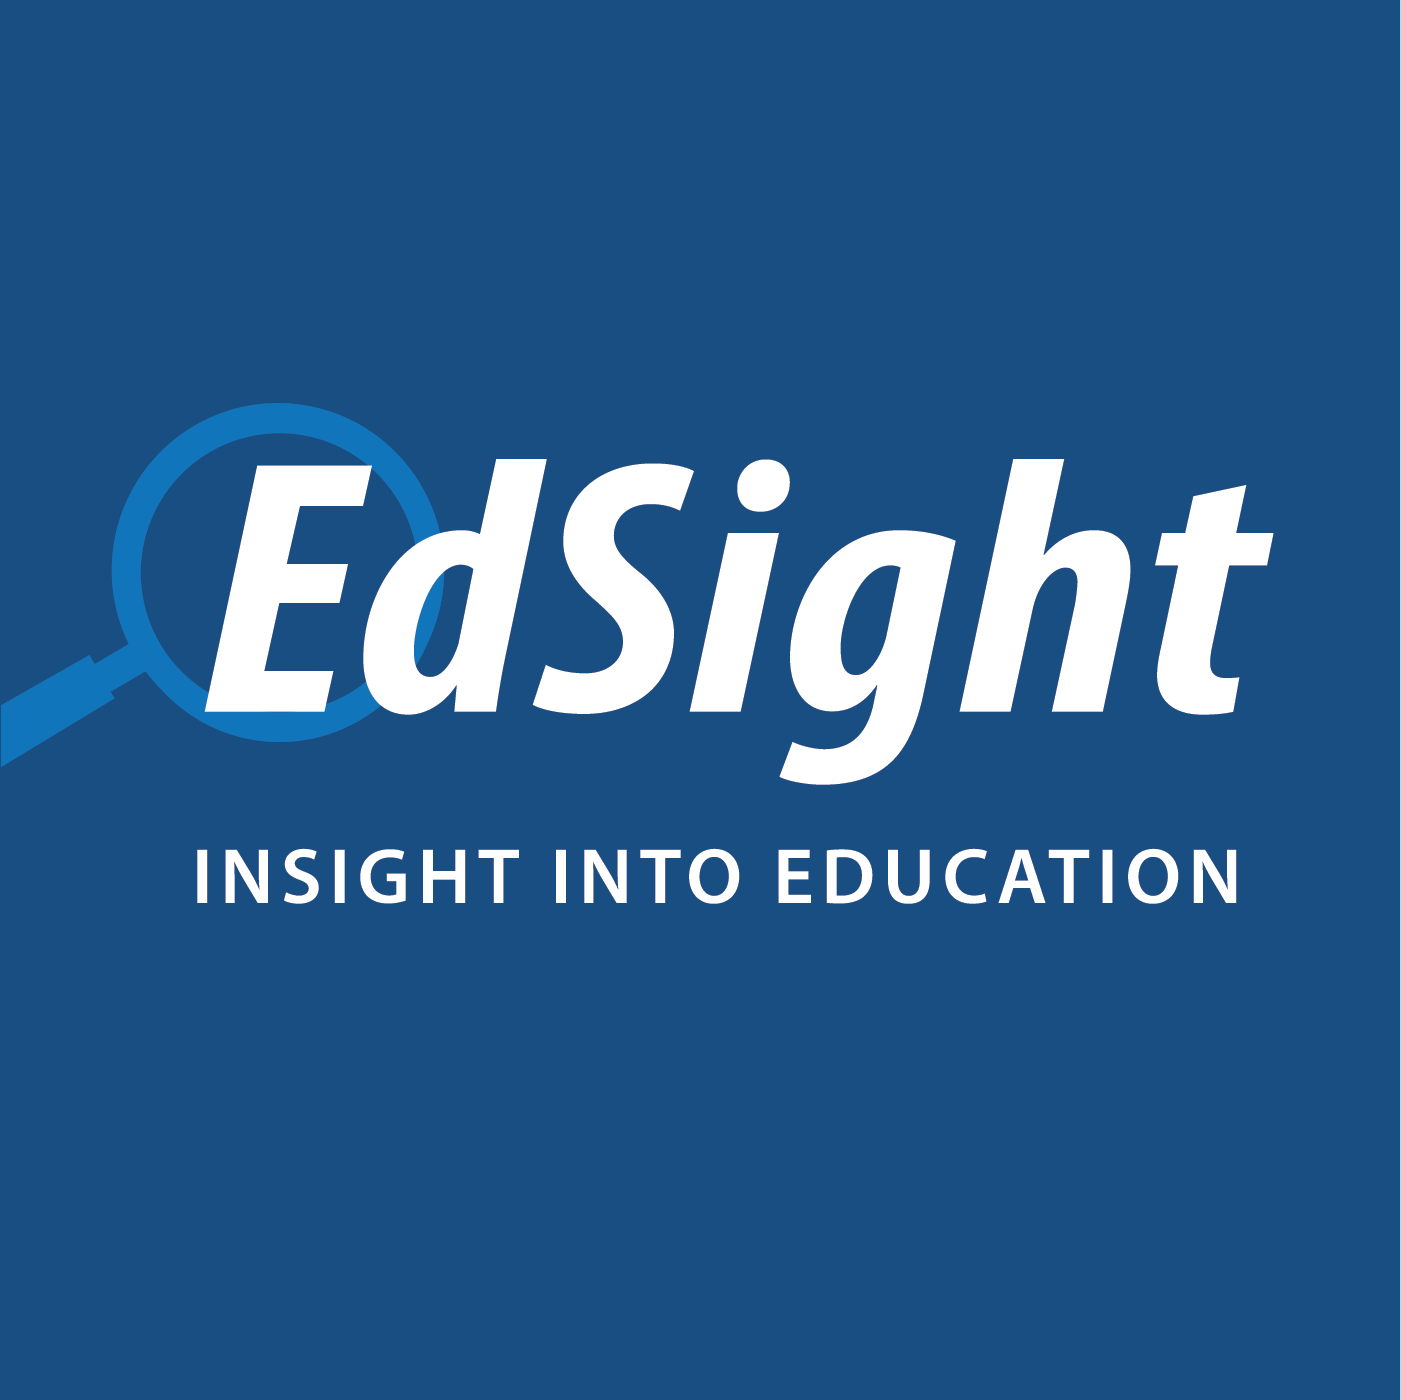 EdSight — Insight into Education